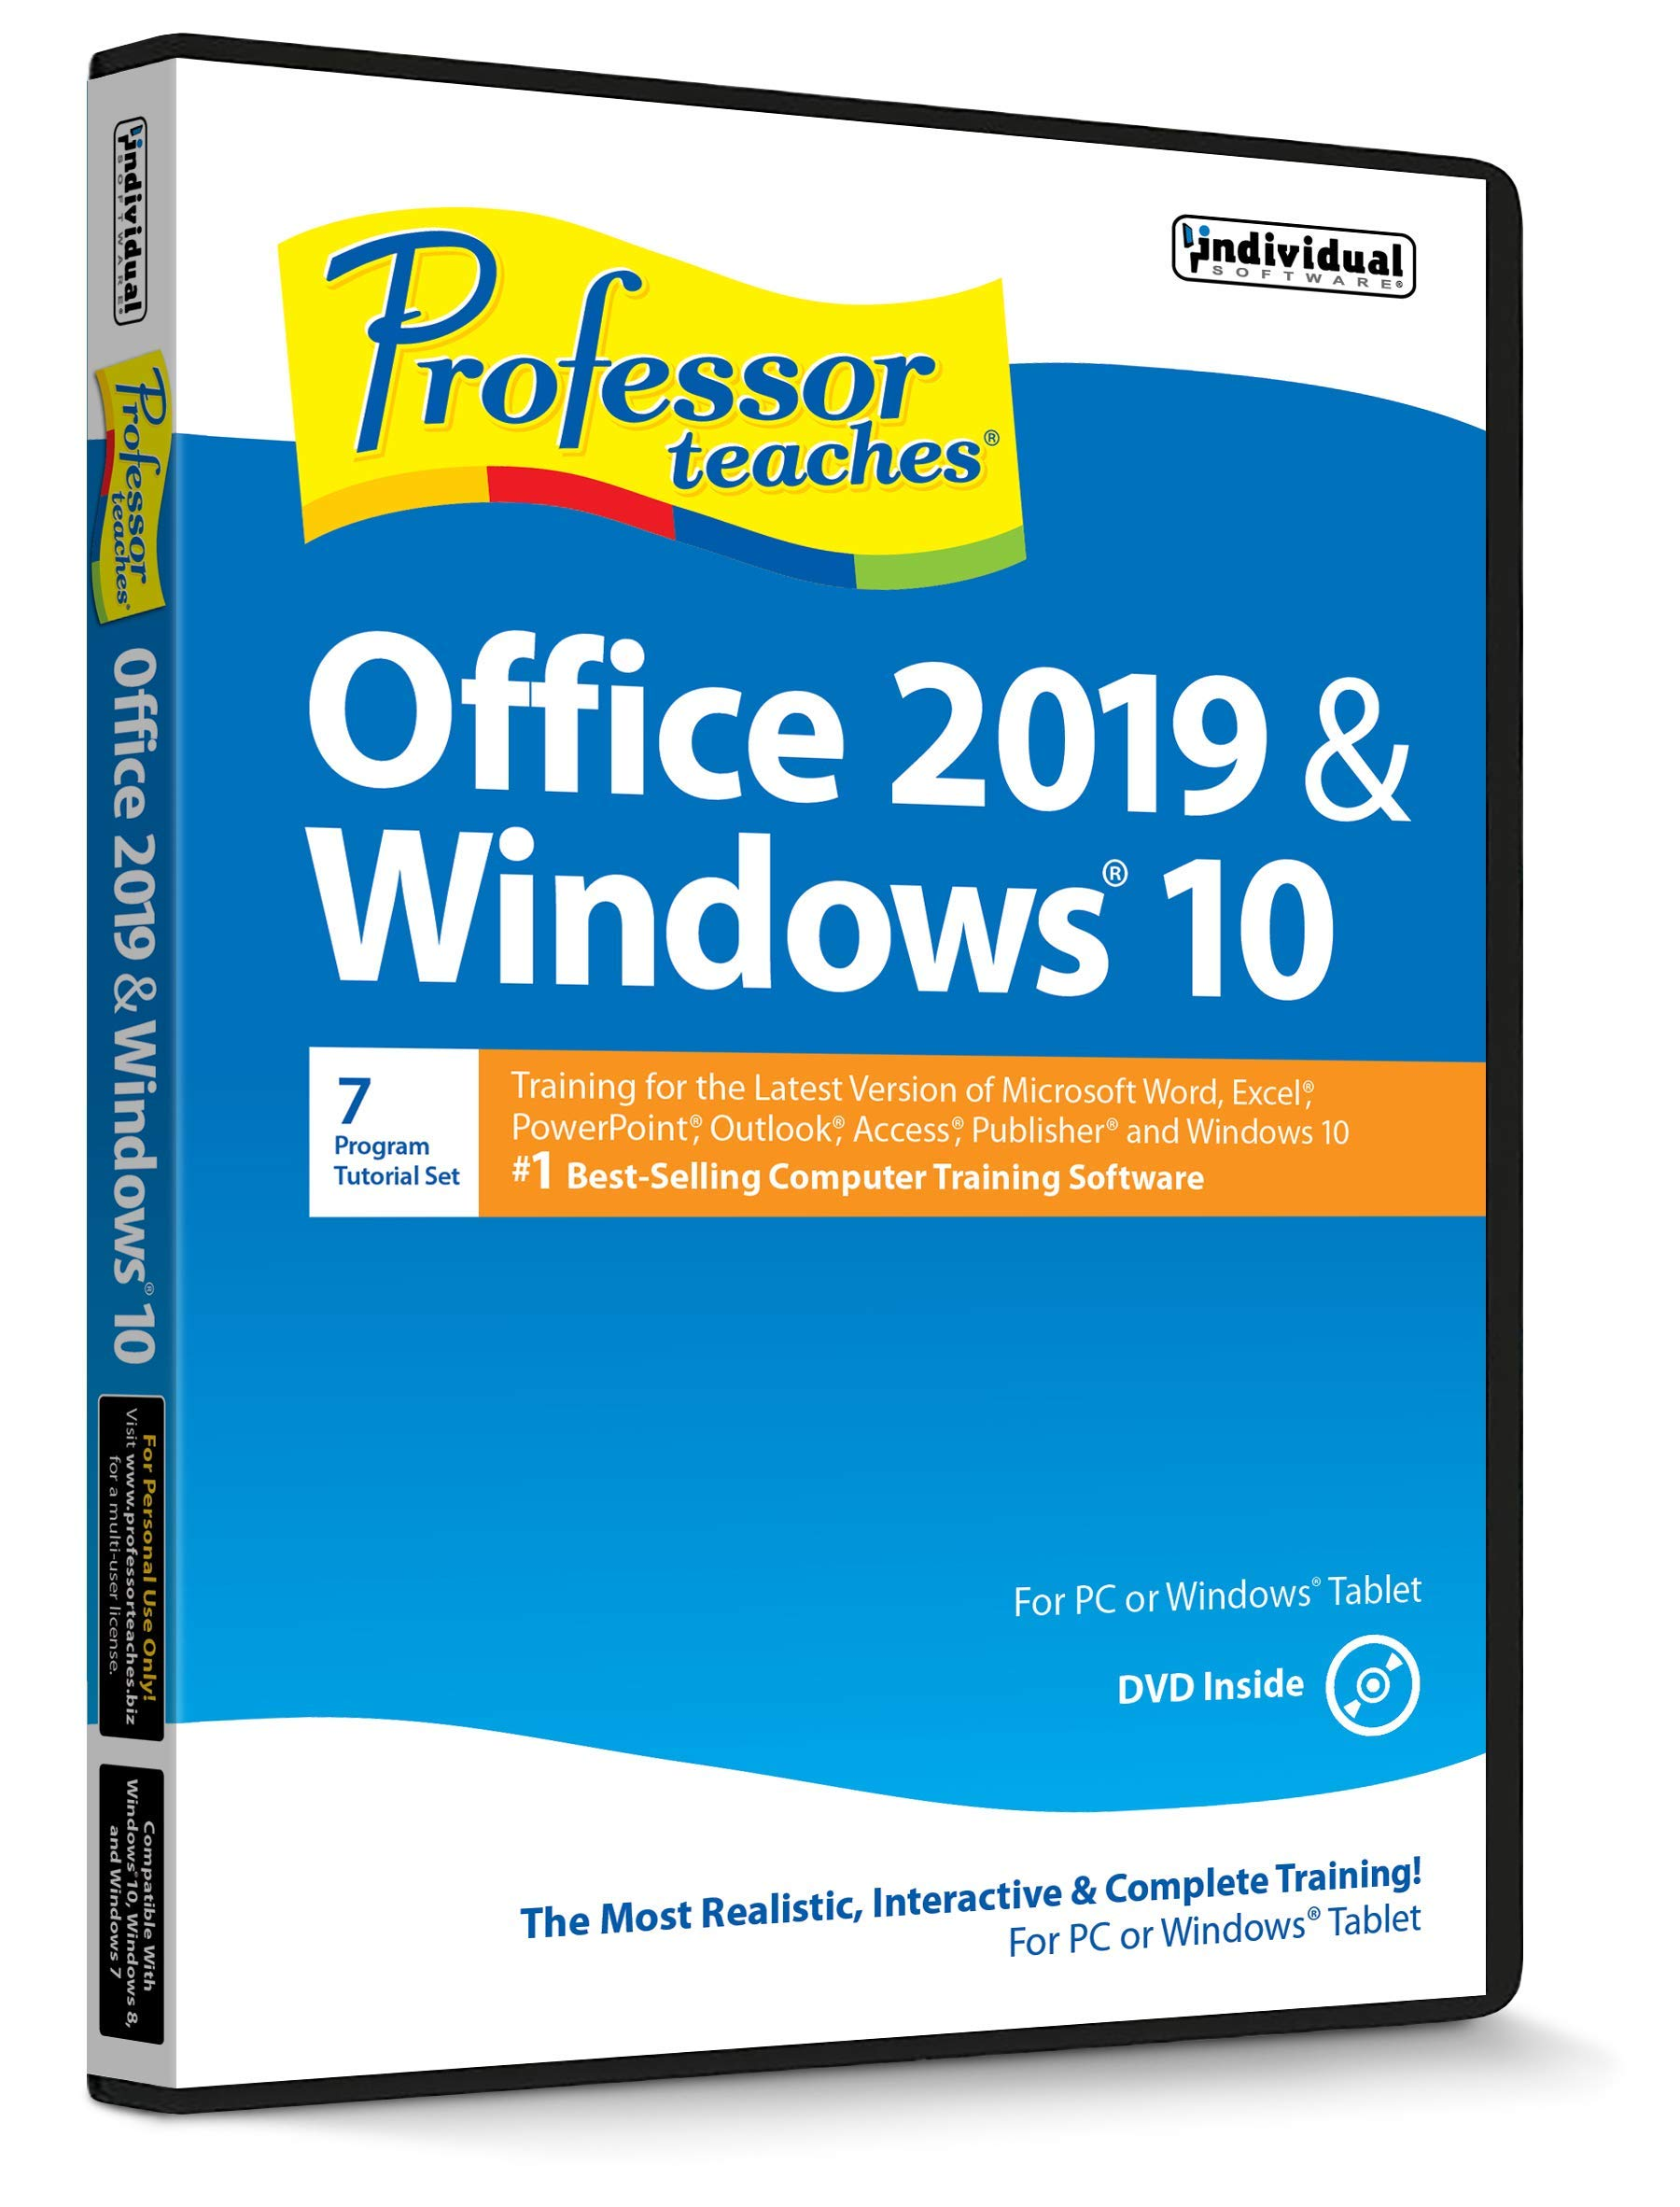 Professor Teaches Office 2019 & Windows 10 by Professor Teaches